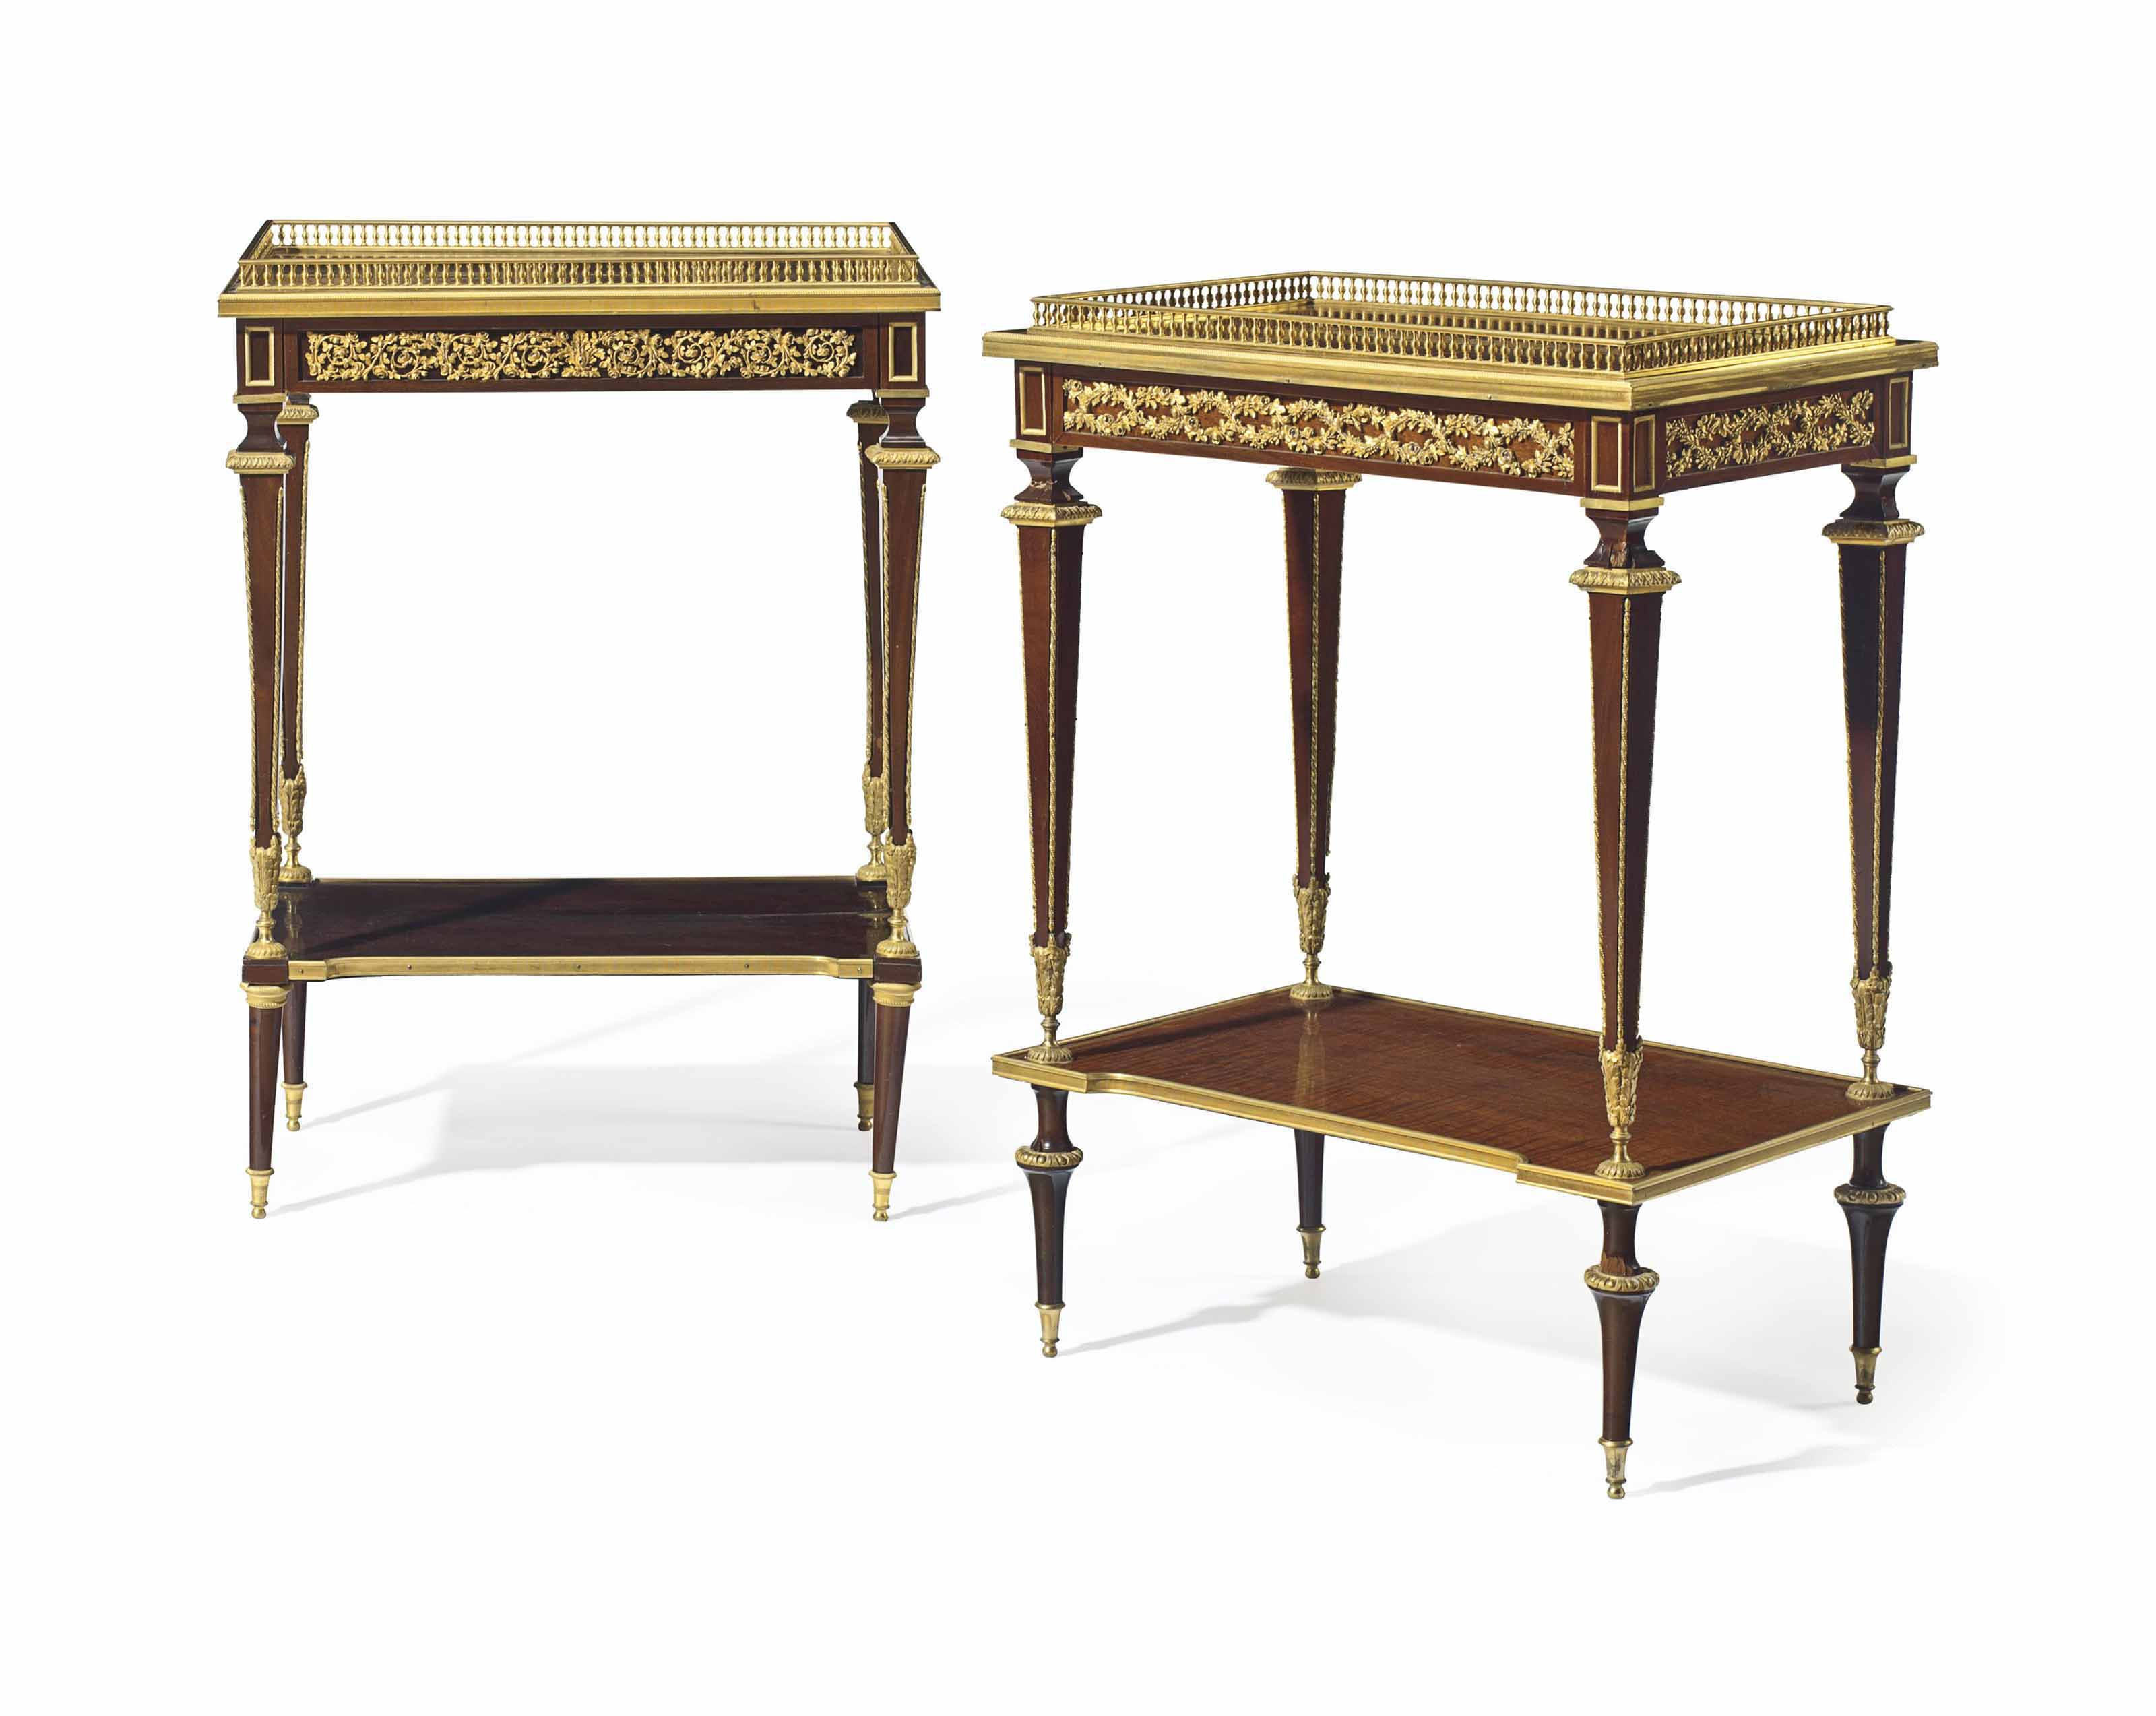 A NEAR PAIR OF FRENCH ORMOLU-M